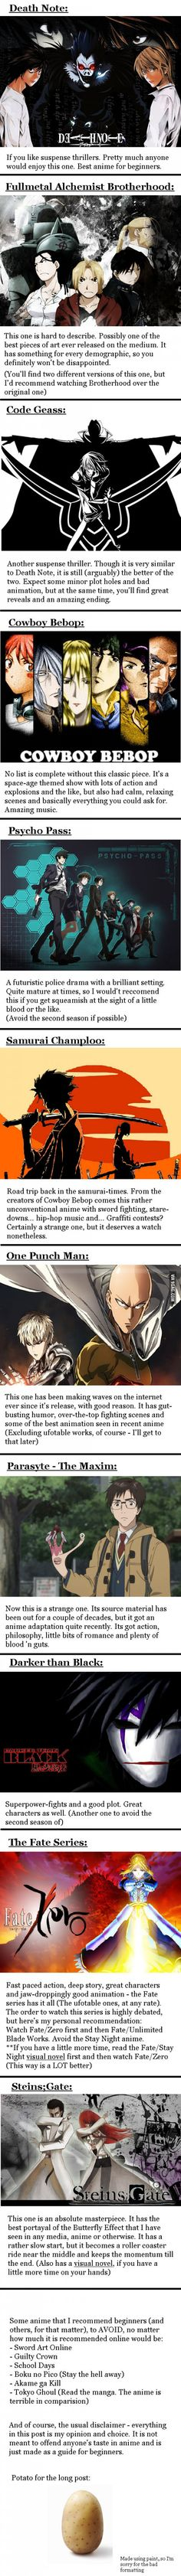 Anime For all those people who are interested in anime, but don't know where to start, here's a simple guide (excuse the sloppiness) - More memes, funny videos and pics on Animes To Watch, Anime Watch, Neue Animes, Manga Anime, Anime Naruto, Anime Suggestions, Anime Recommendations, Cosplay Anime, Good Movies To Watch